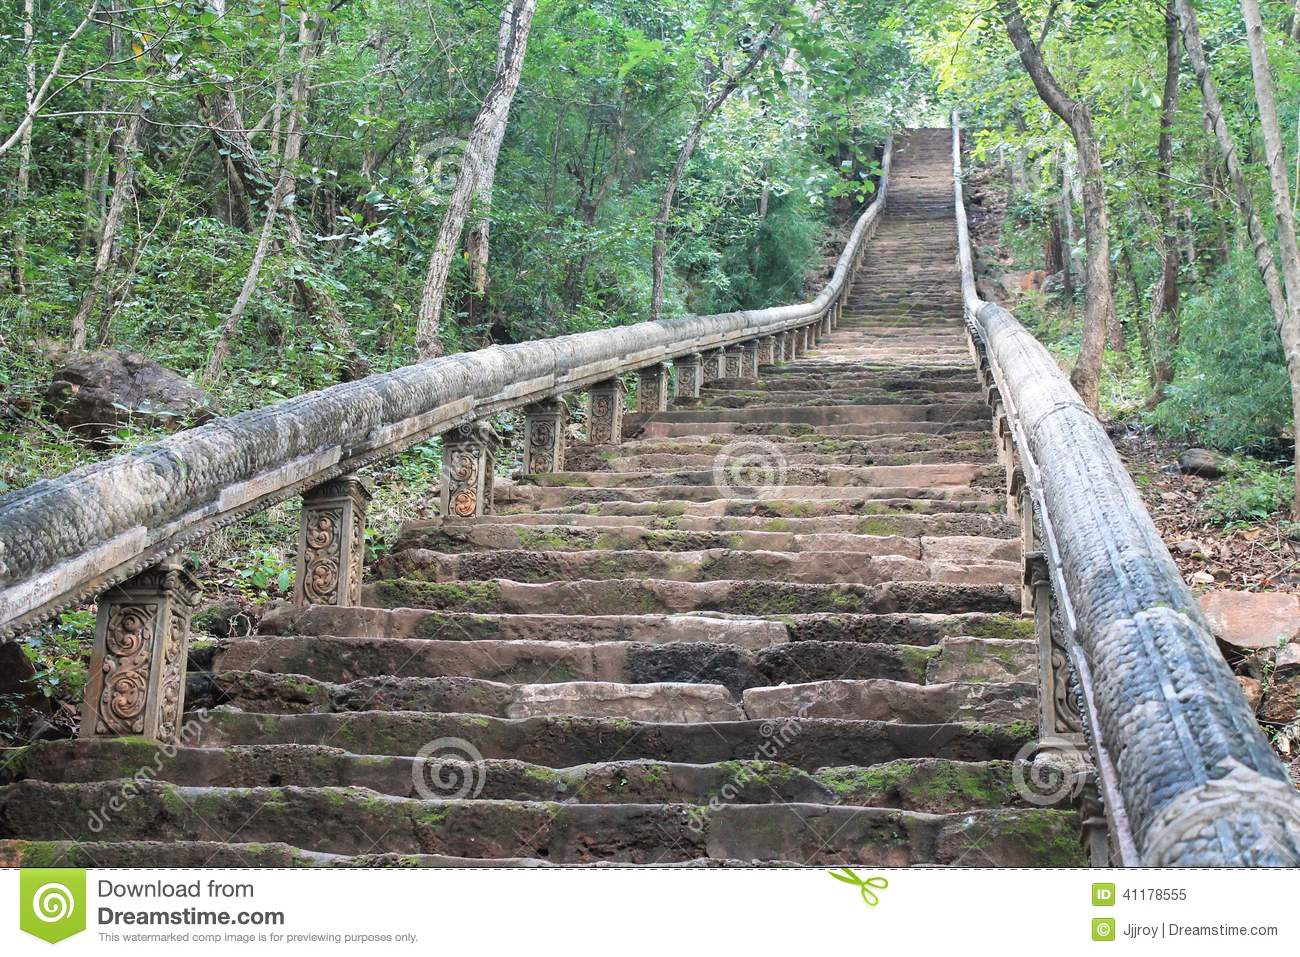 escalier en pierre aux ruines de temple de sommet de montagne au cambodge image stock image du. Black Bedroom Furniture Sets. Home Design Ideas